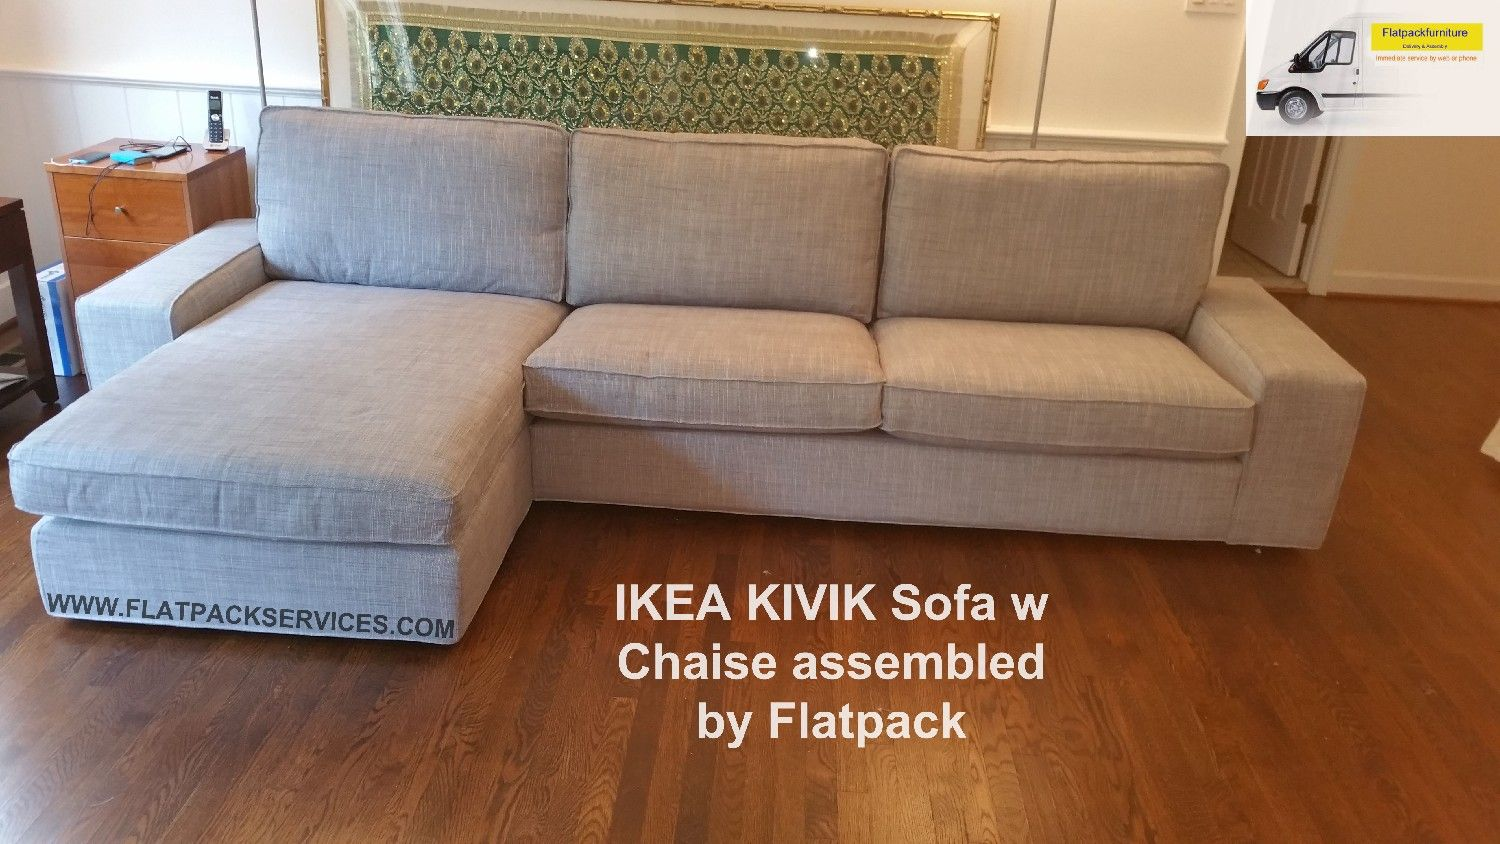 Remarkable Ikea Kivik Sofa W Chaise Assembled In Mclean Furniture Ibusinesslaw Wood Chair Design Ideas Ibusinesslaworg